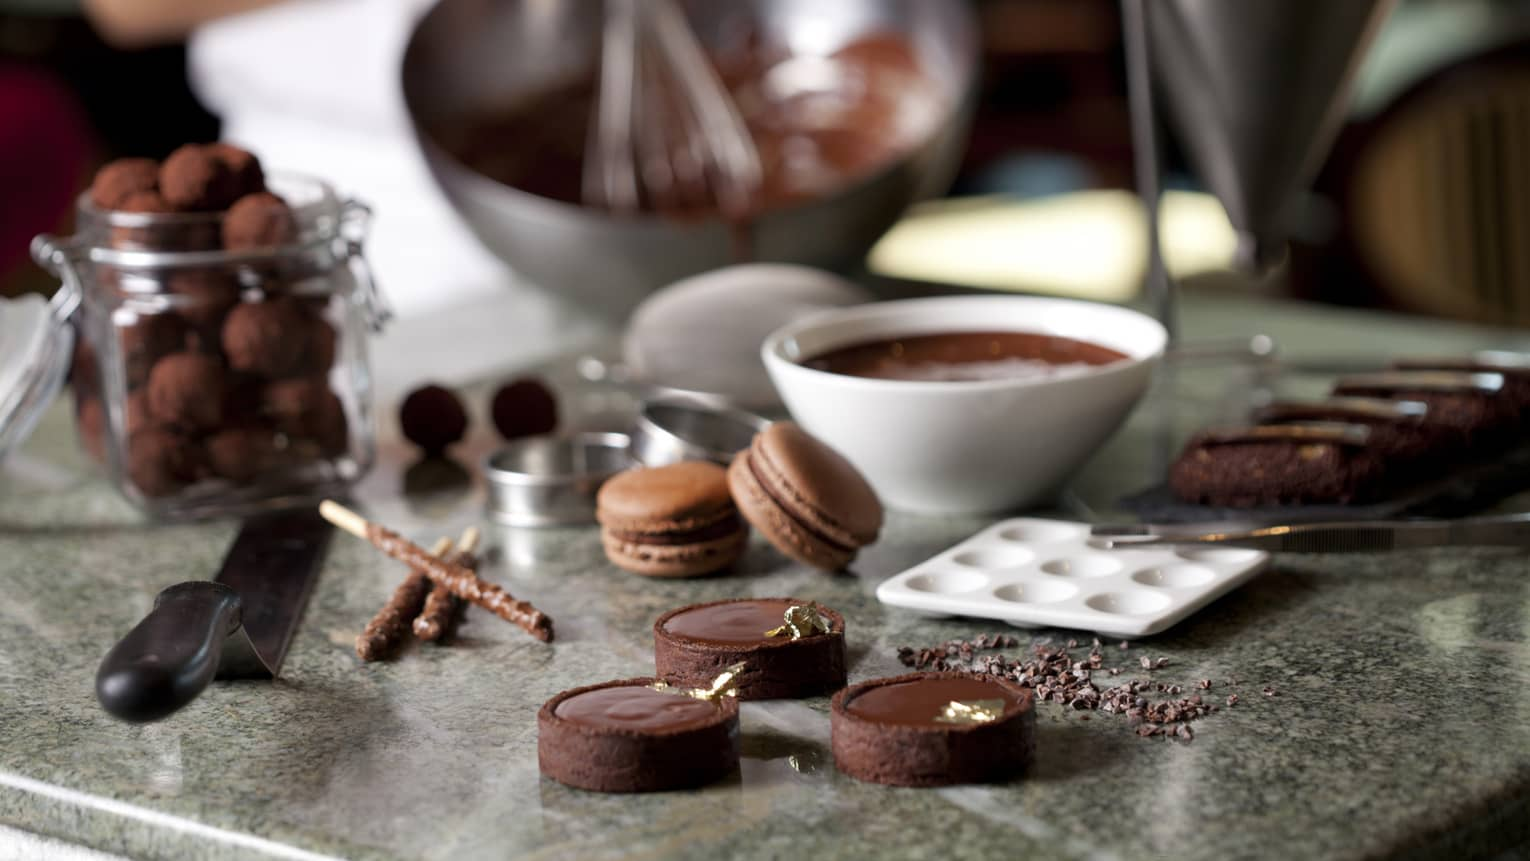 Close-up of fine chocolates, macarons, bowl of melted chocolate on counter